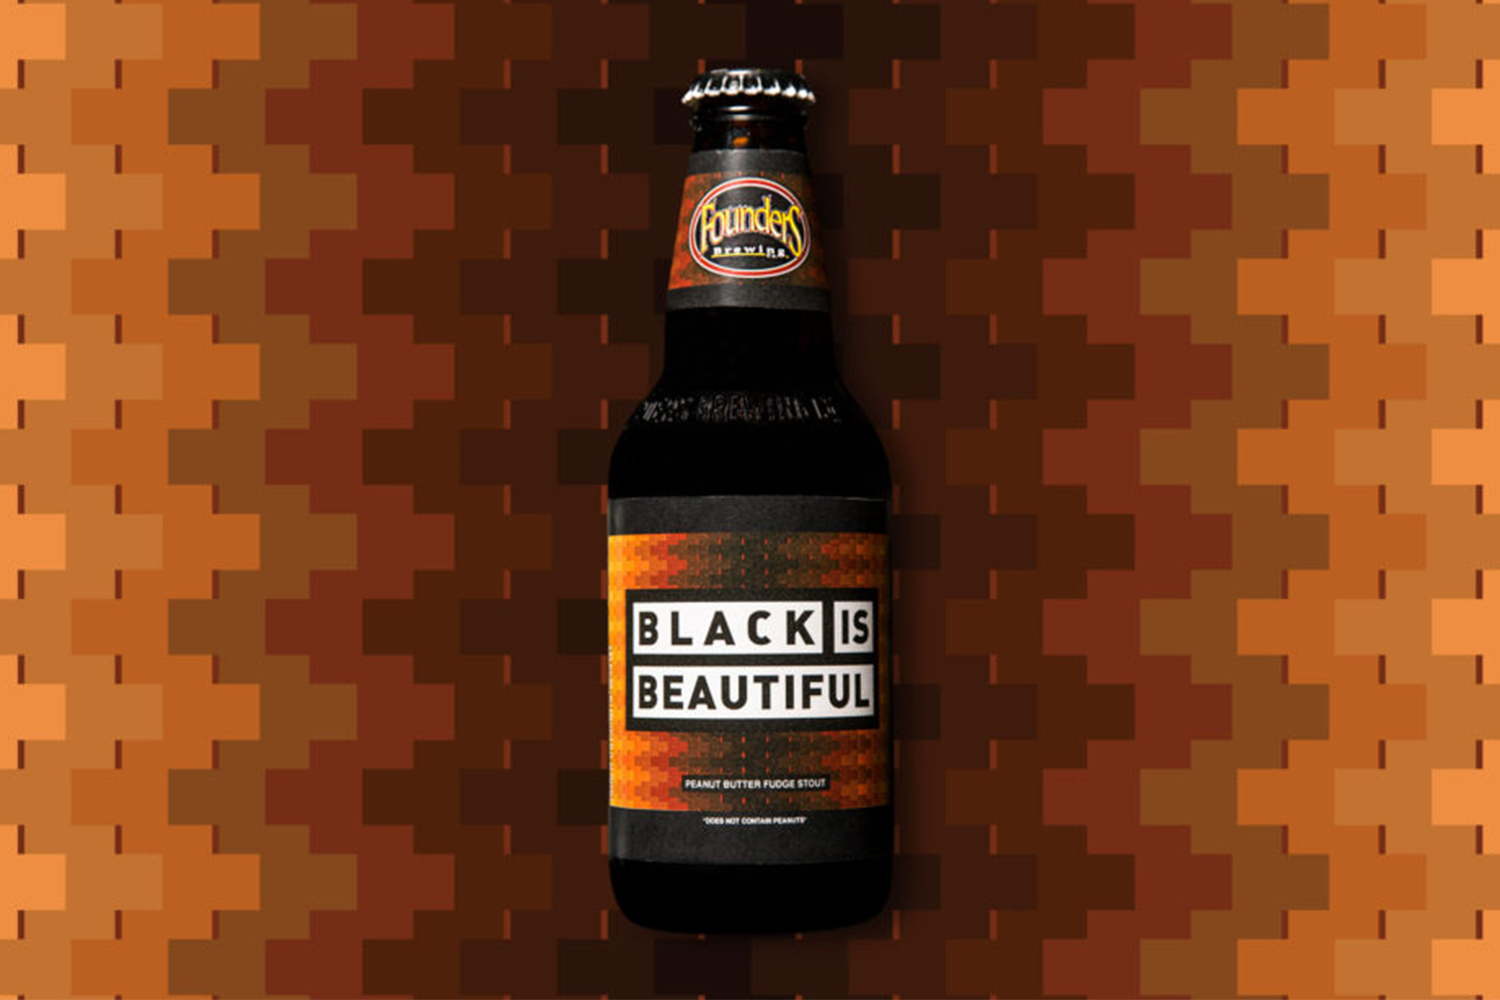 Founders Black Is Beautiful peanut butter fudge stout